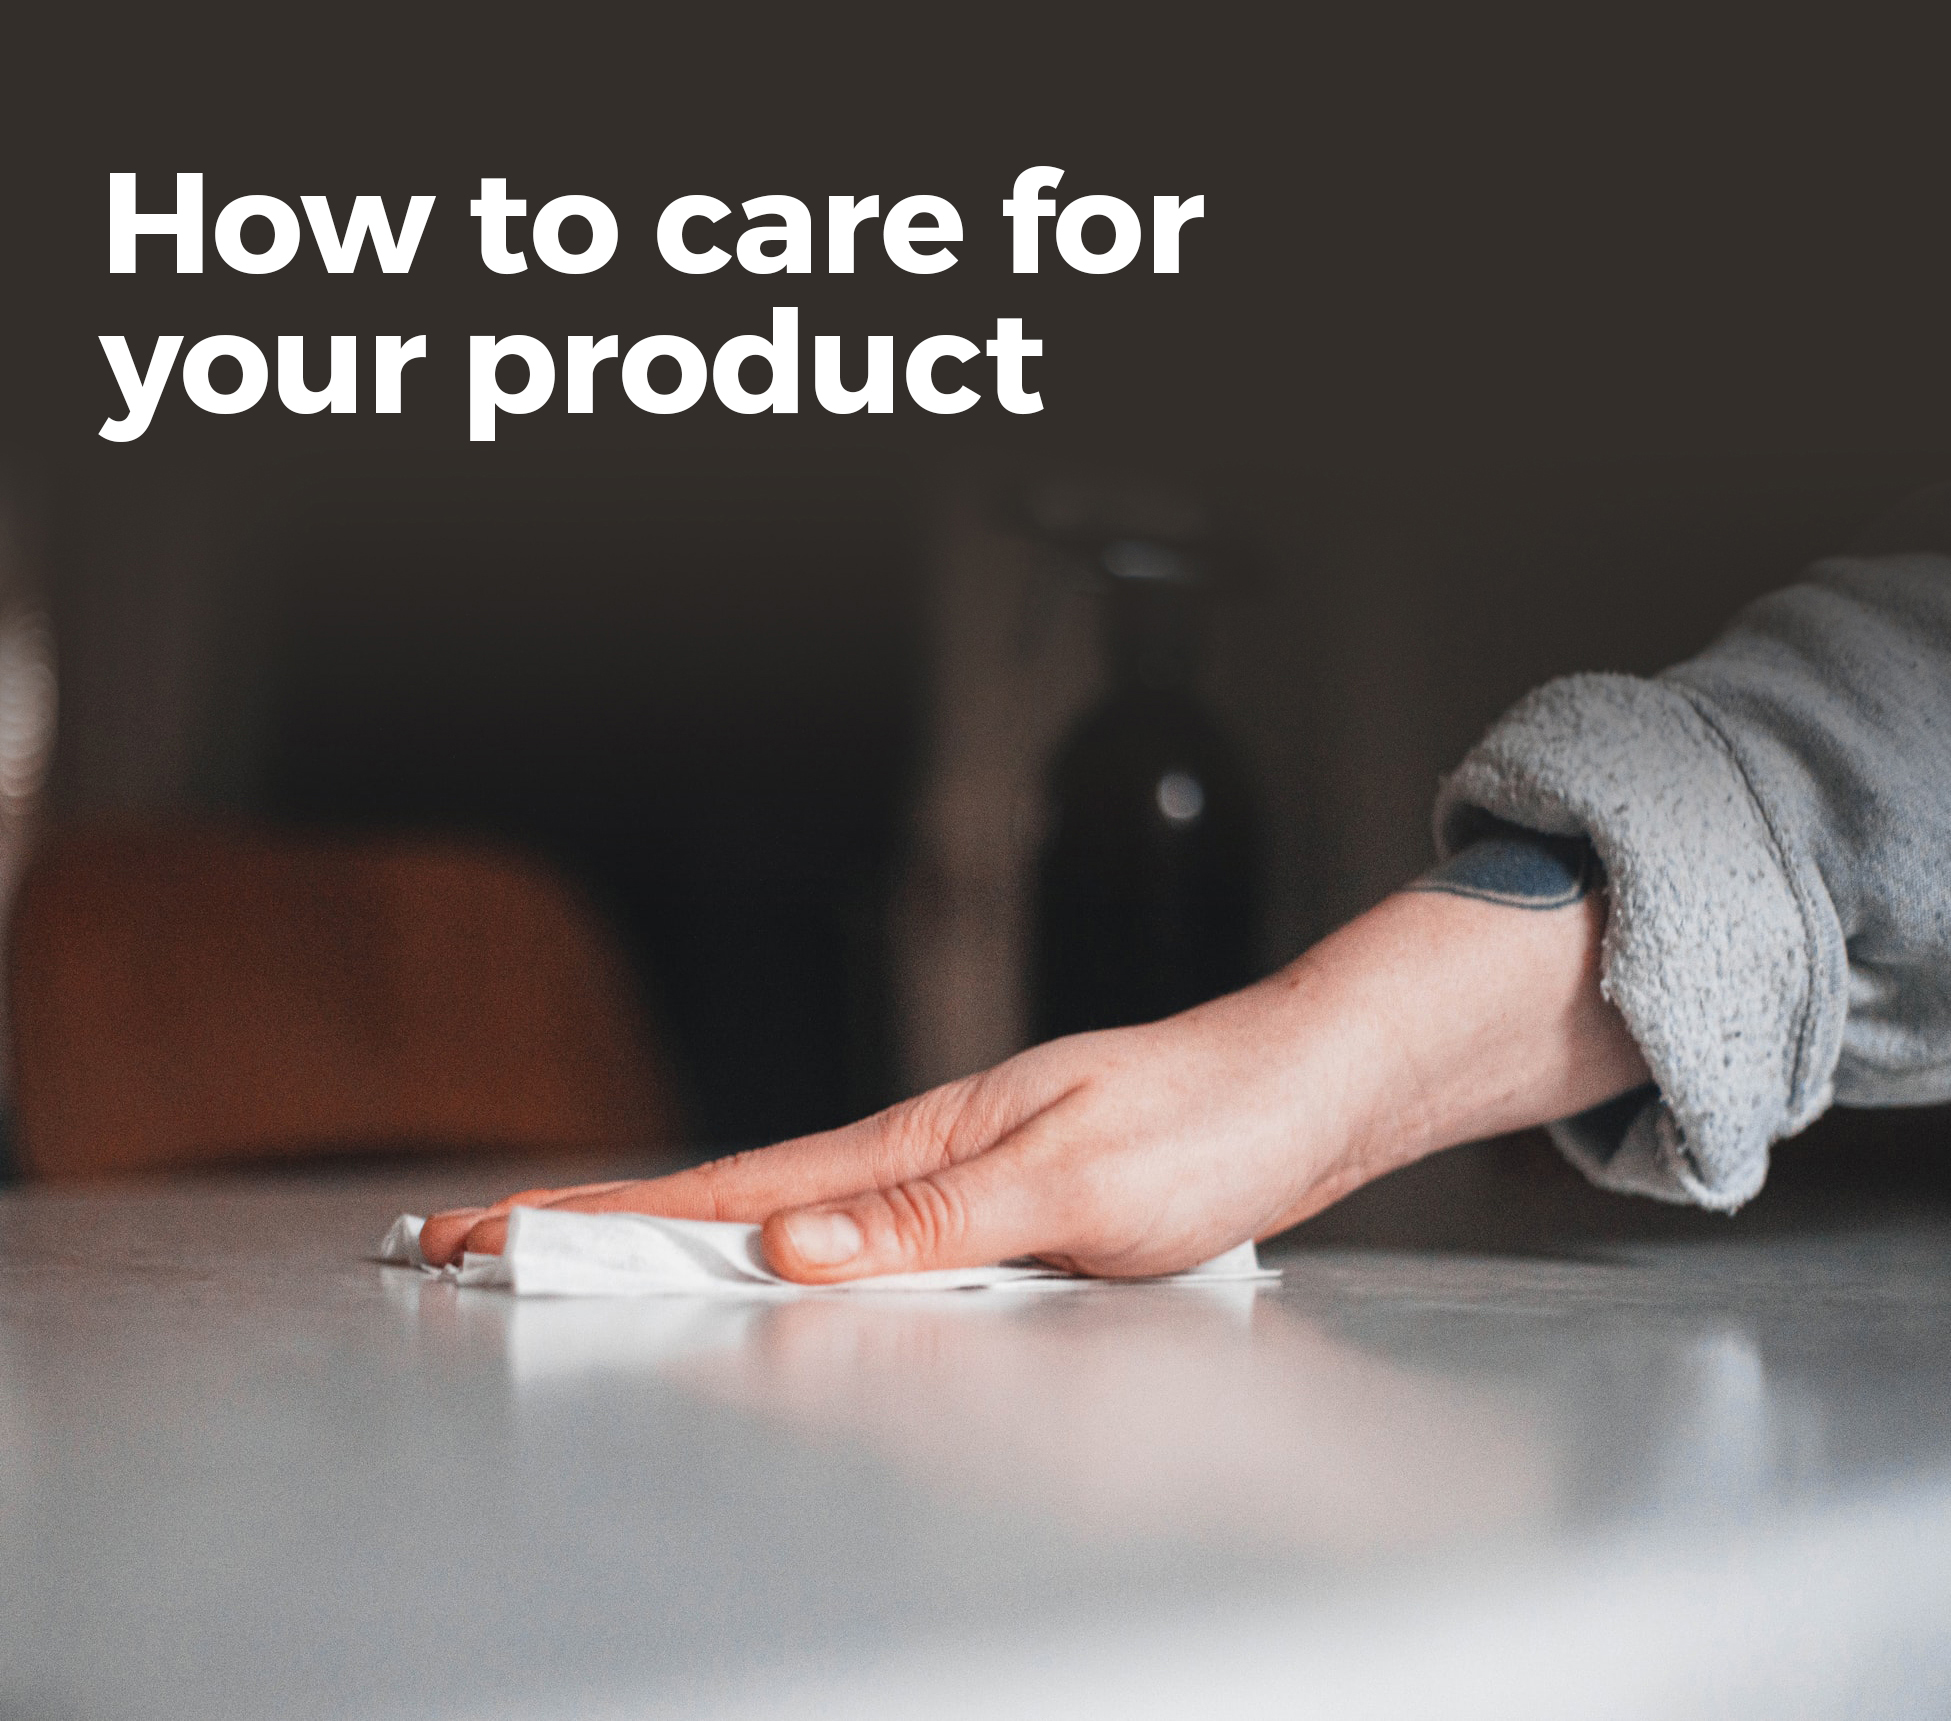 How to care for your product